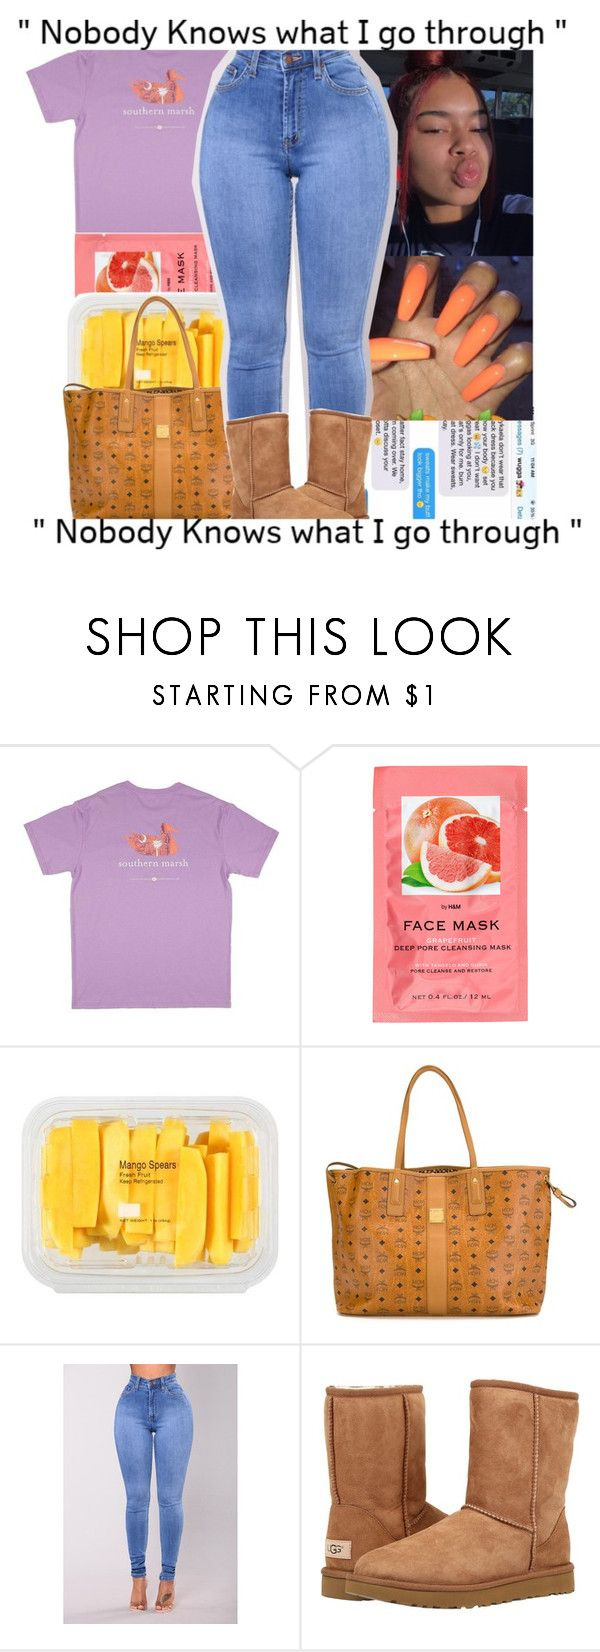 """10-29-17❤"" by shawtyash ❤ liked on Polyvore featuring H&M, MANGO, MCM and UGG Australia"